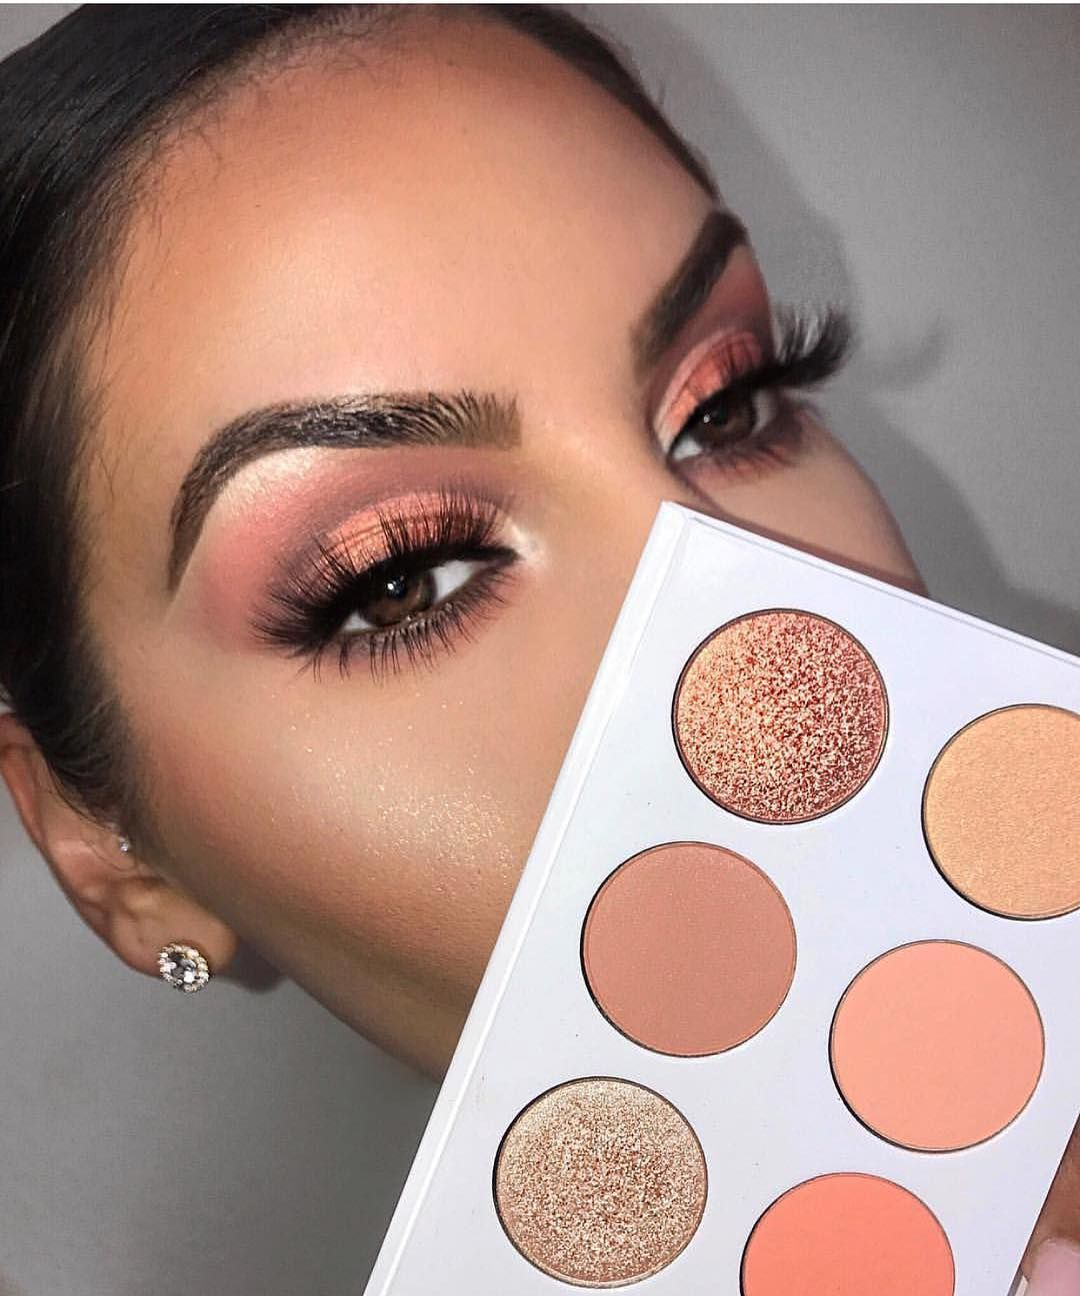 The Peach Extended Palette by Kylie Cosmetics #3